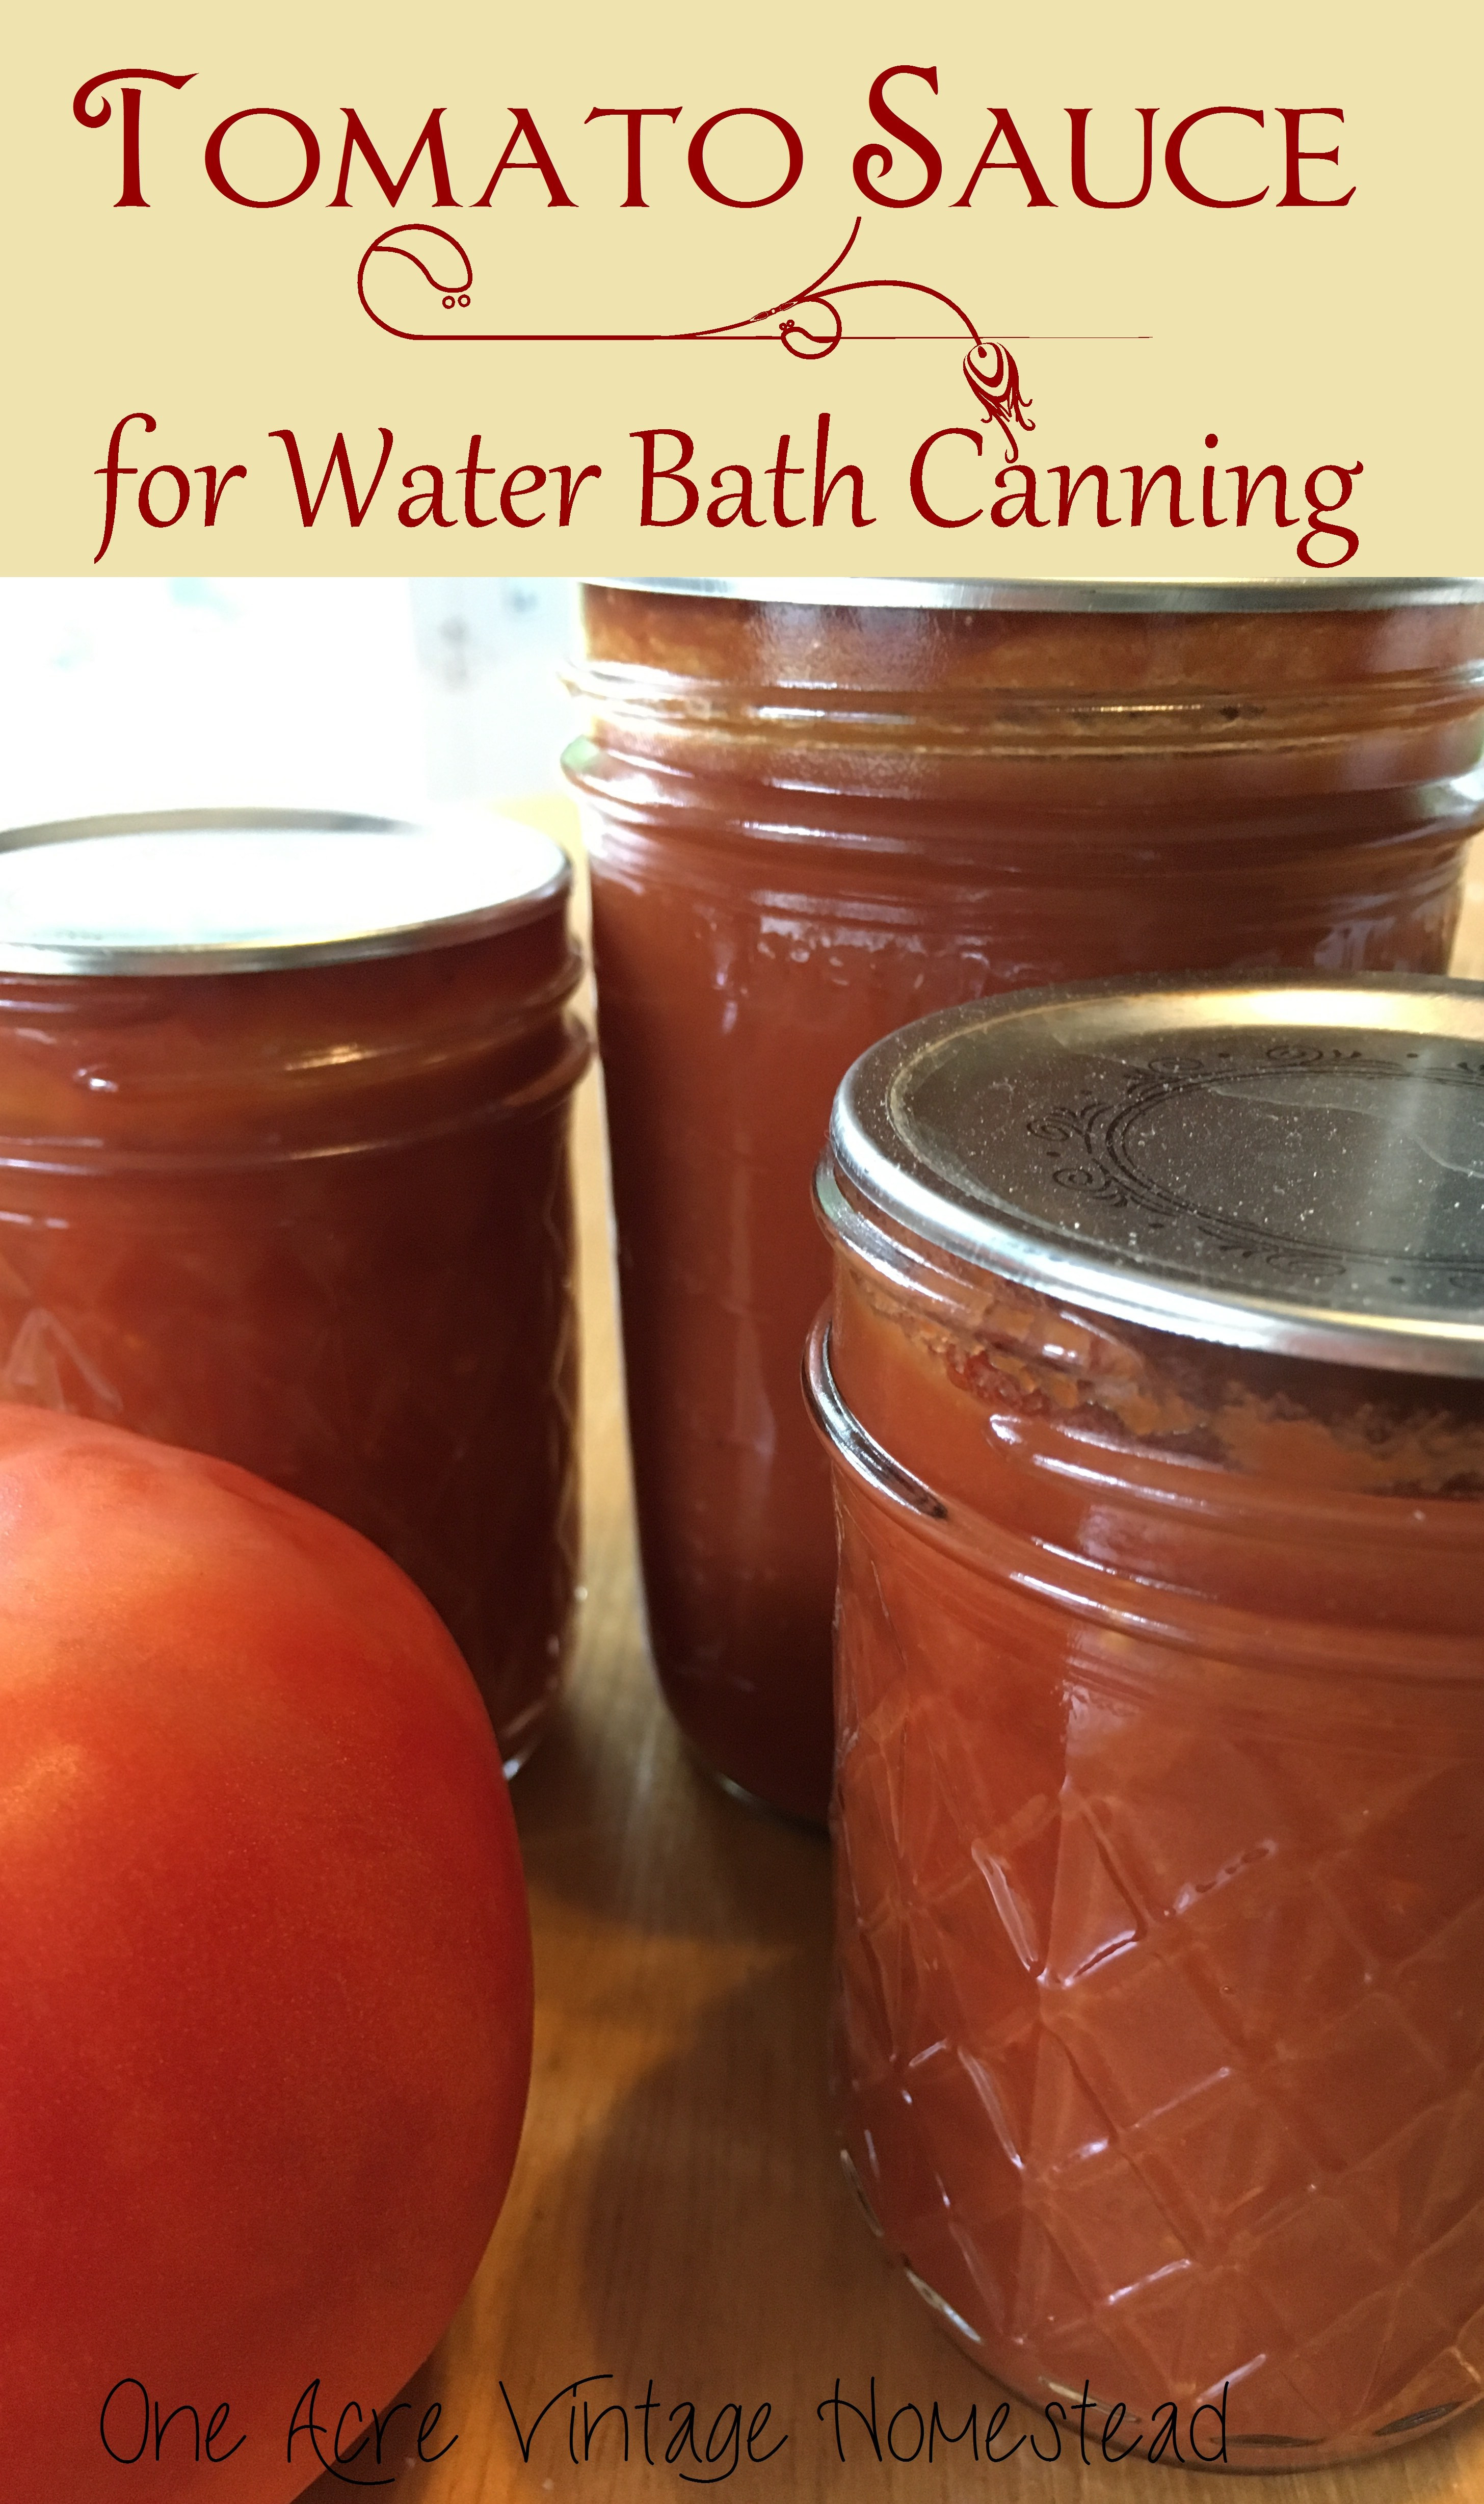 Tomato Sauce Canning Recipe  Tomato Sauce A Water Bath Canning Food Preservation Recipe